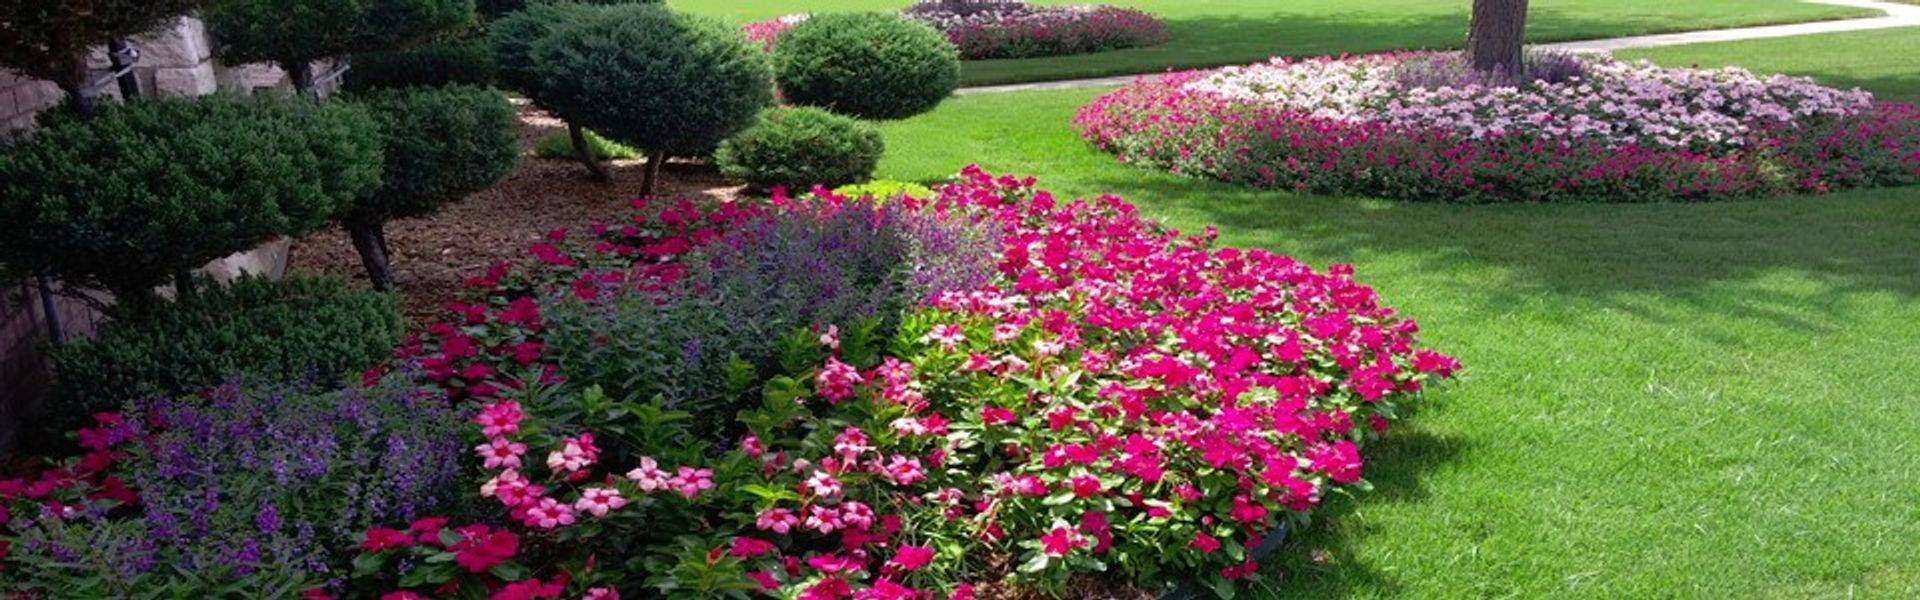 Lawn Landscaping Service  Yard  Barber Lawn Service LLC